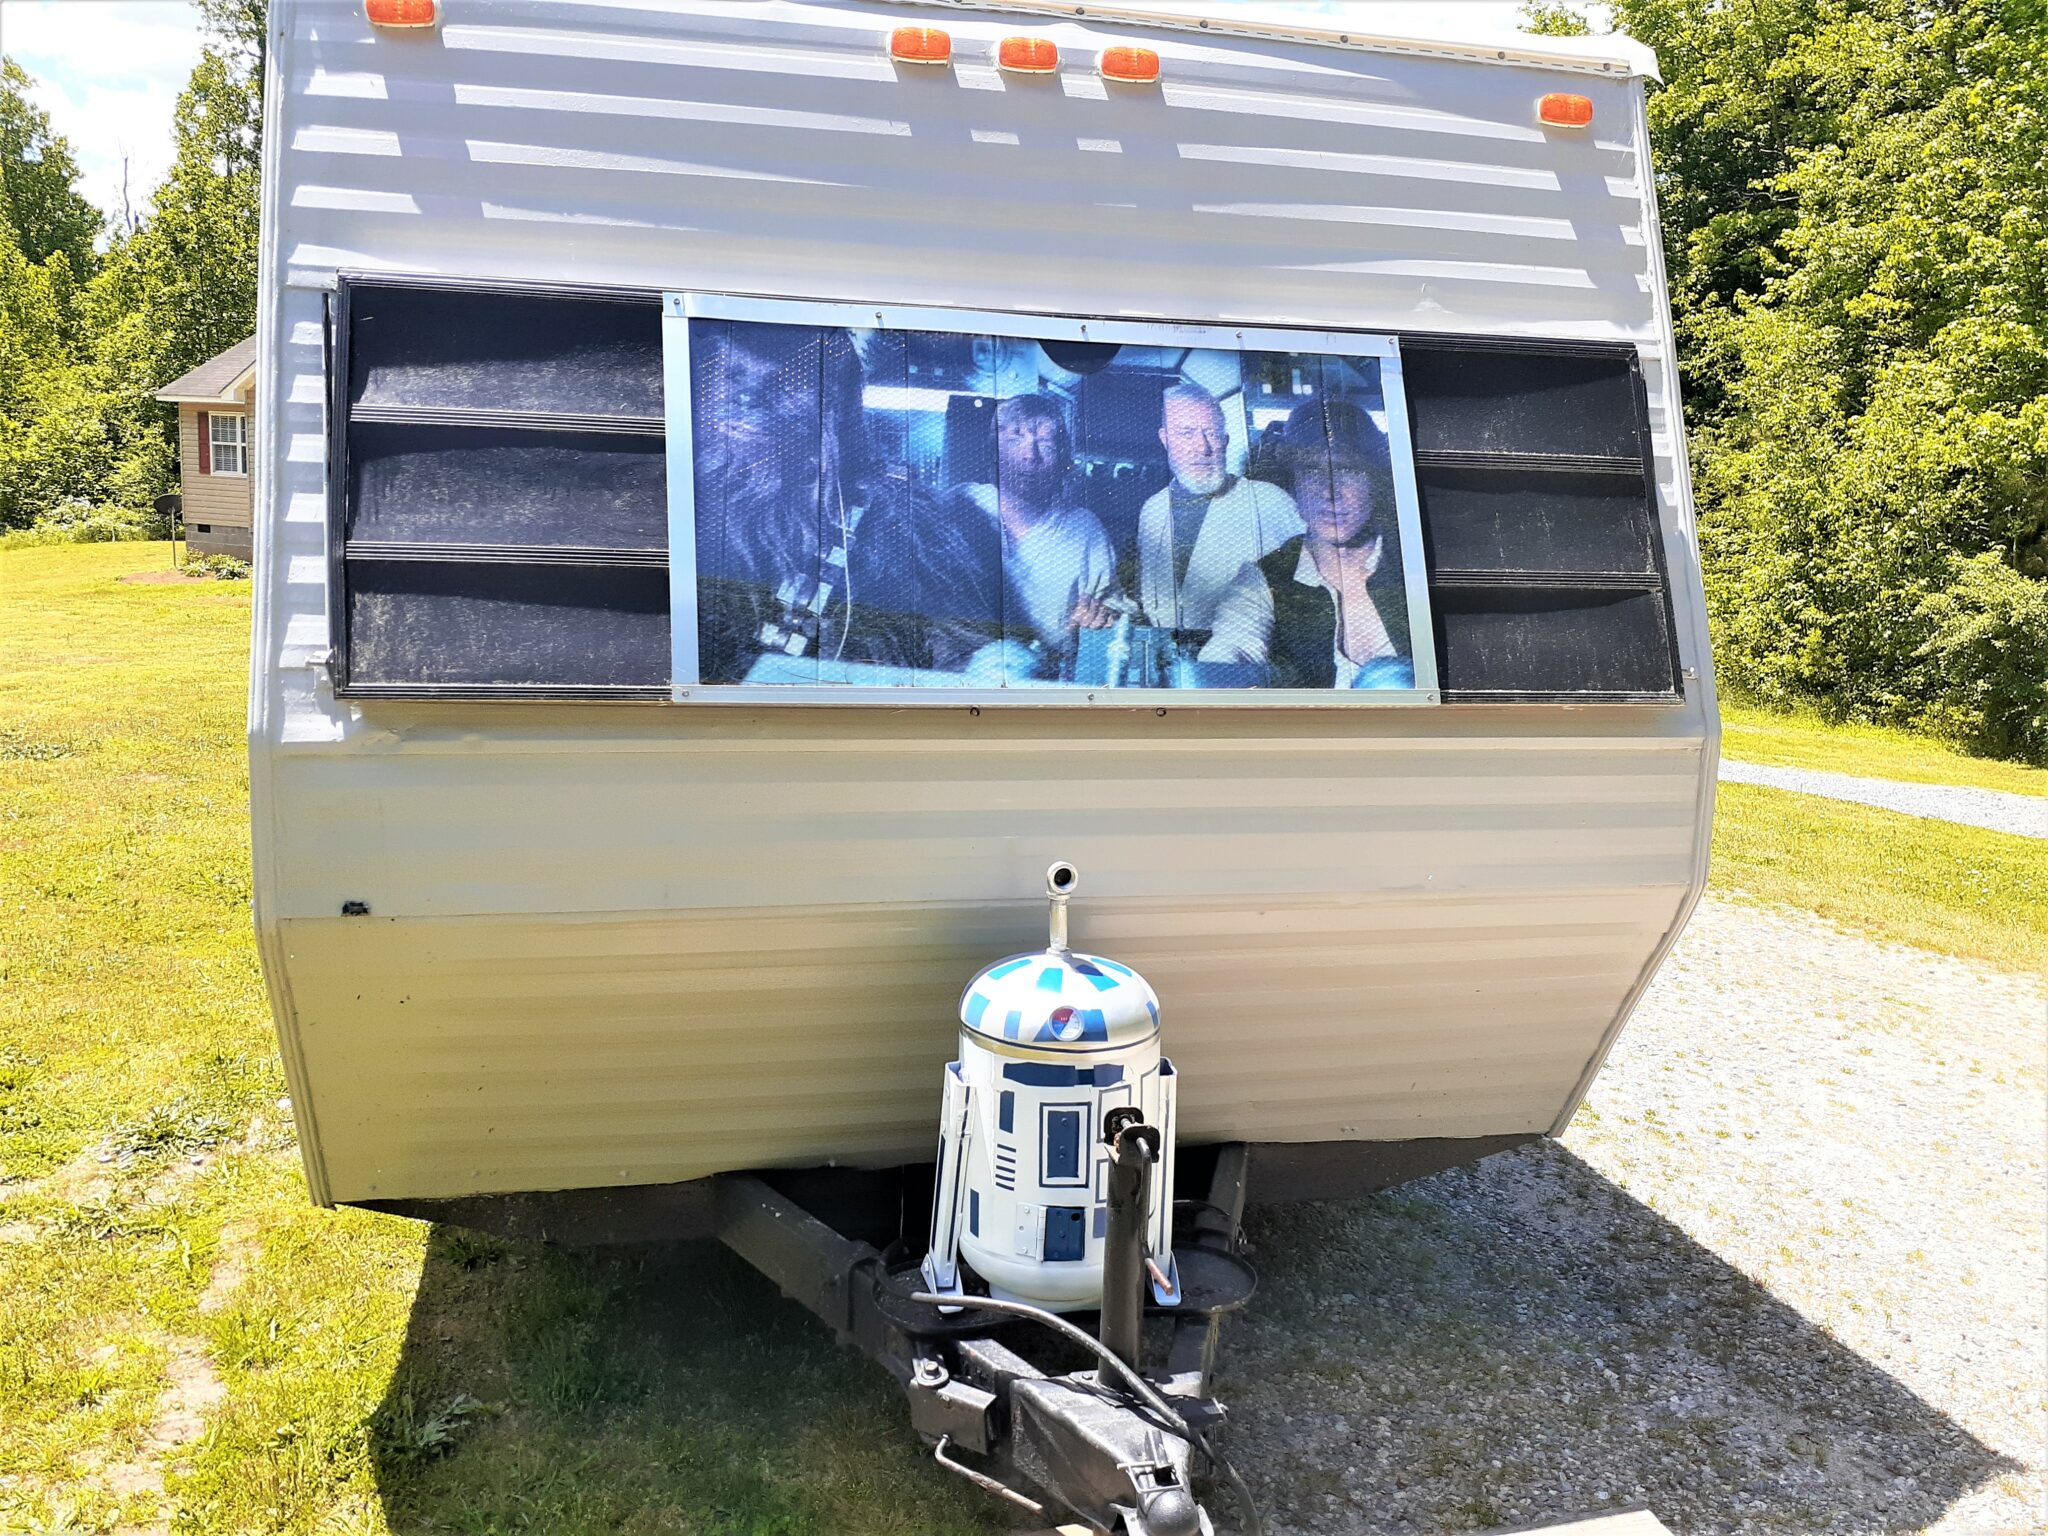 You Have to See This Amazing Star Wars Themed RV Reno All Things with Purpose Sarah Lemp 7